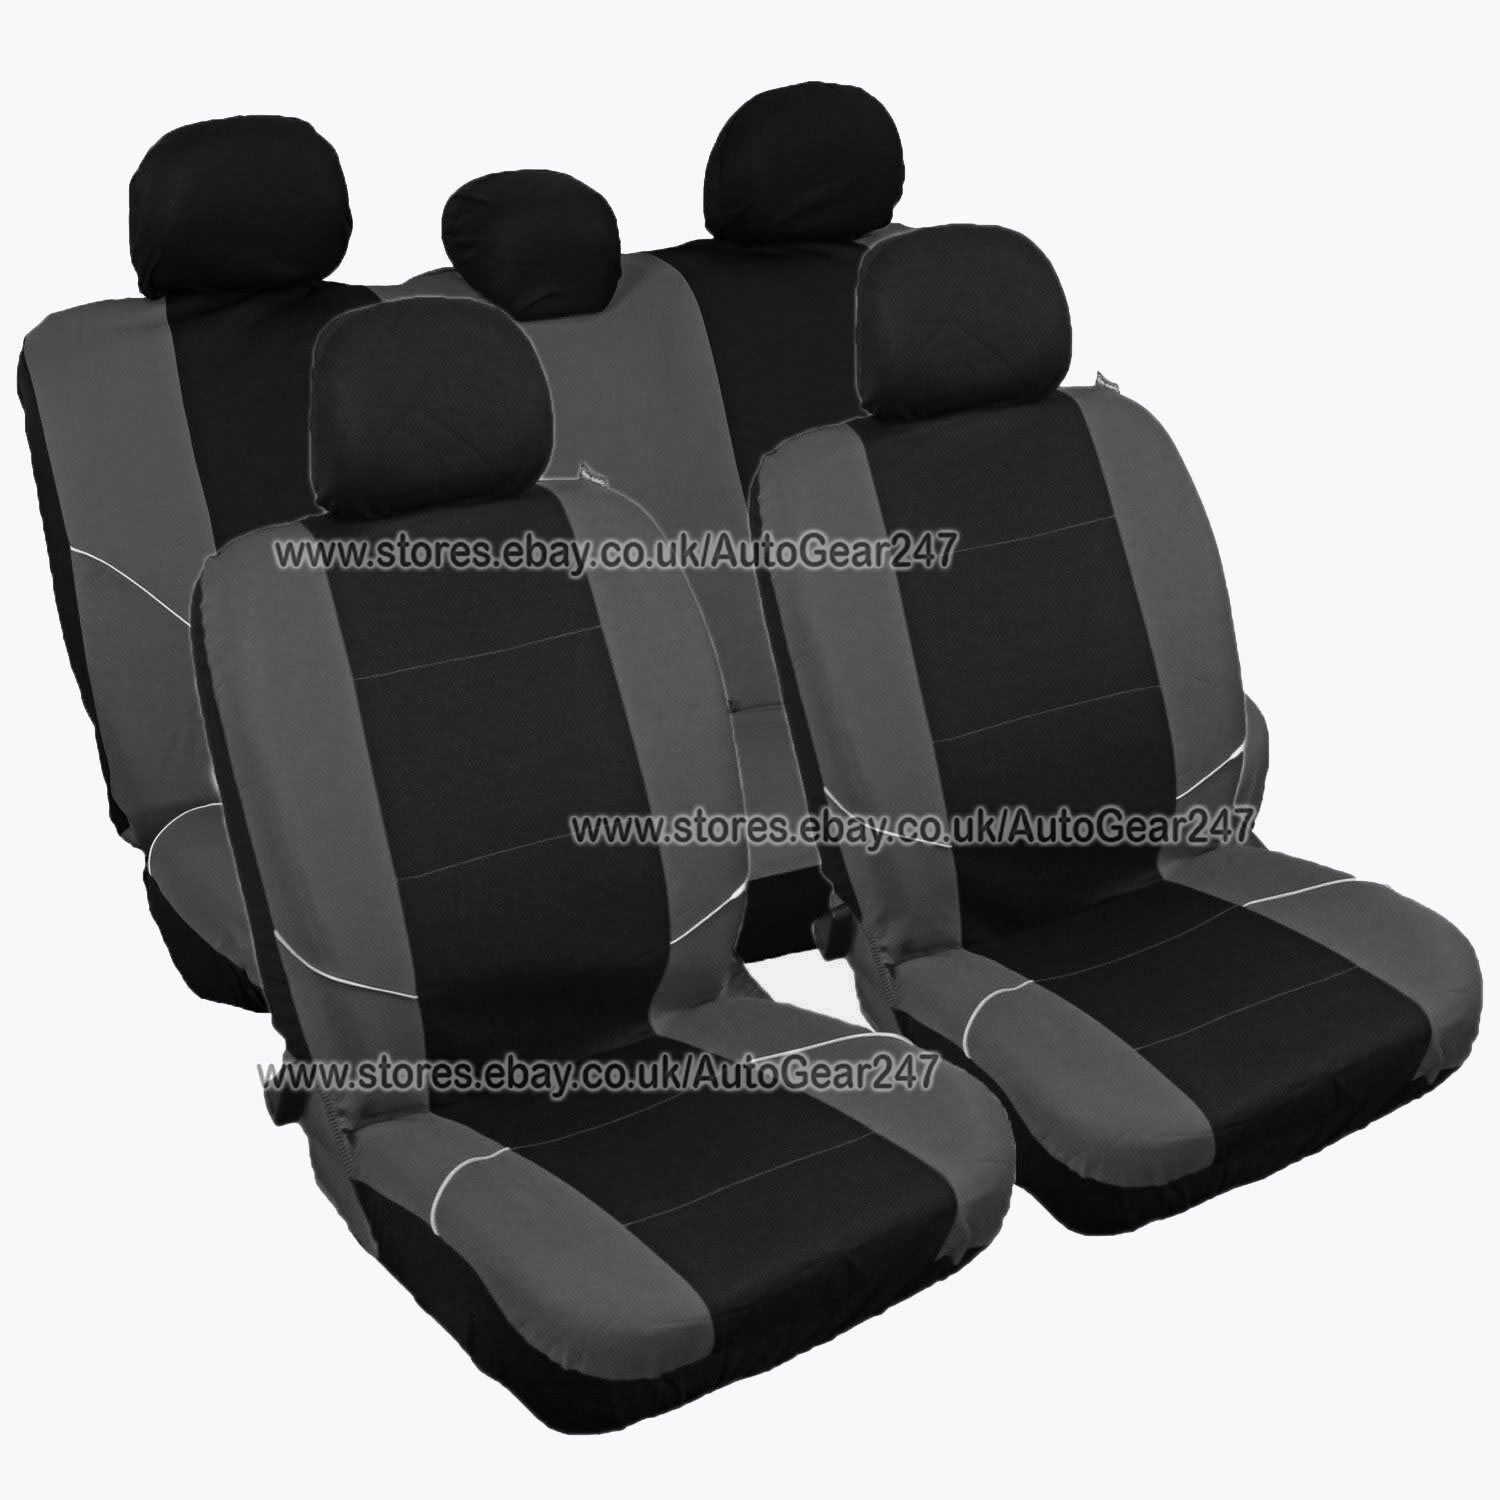 universal black grey front rear car seat covers set washable airbag compatible ebay. Black Bedroom Furniture Sets. Home Design Ideas